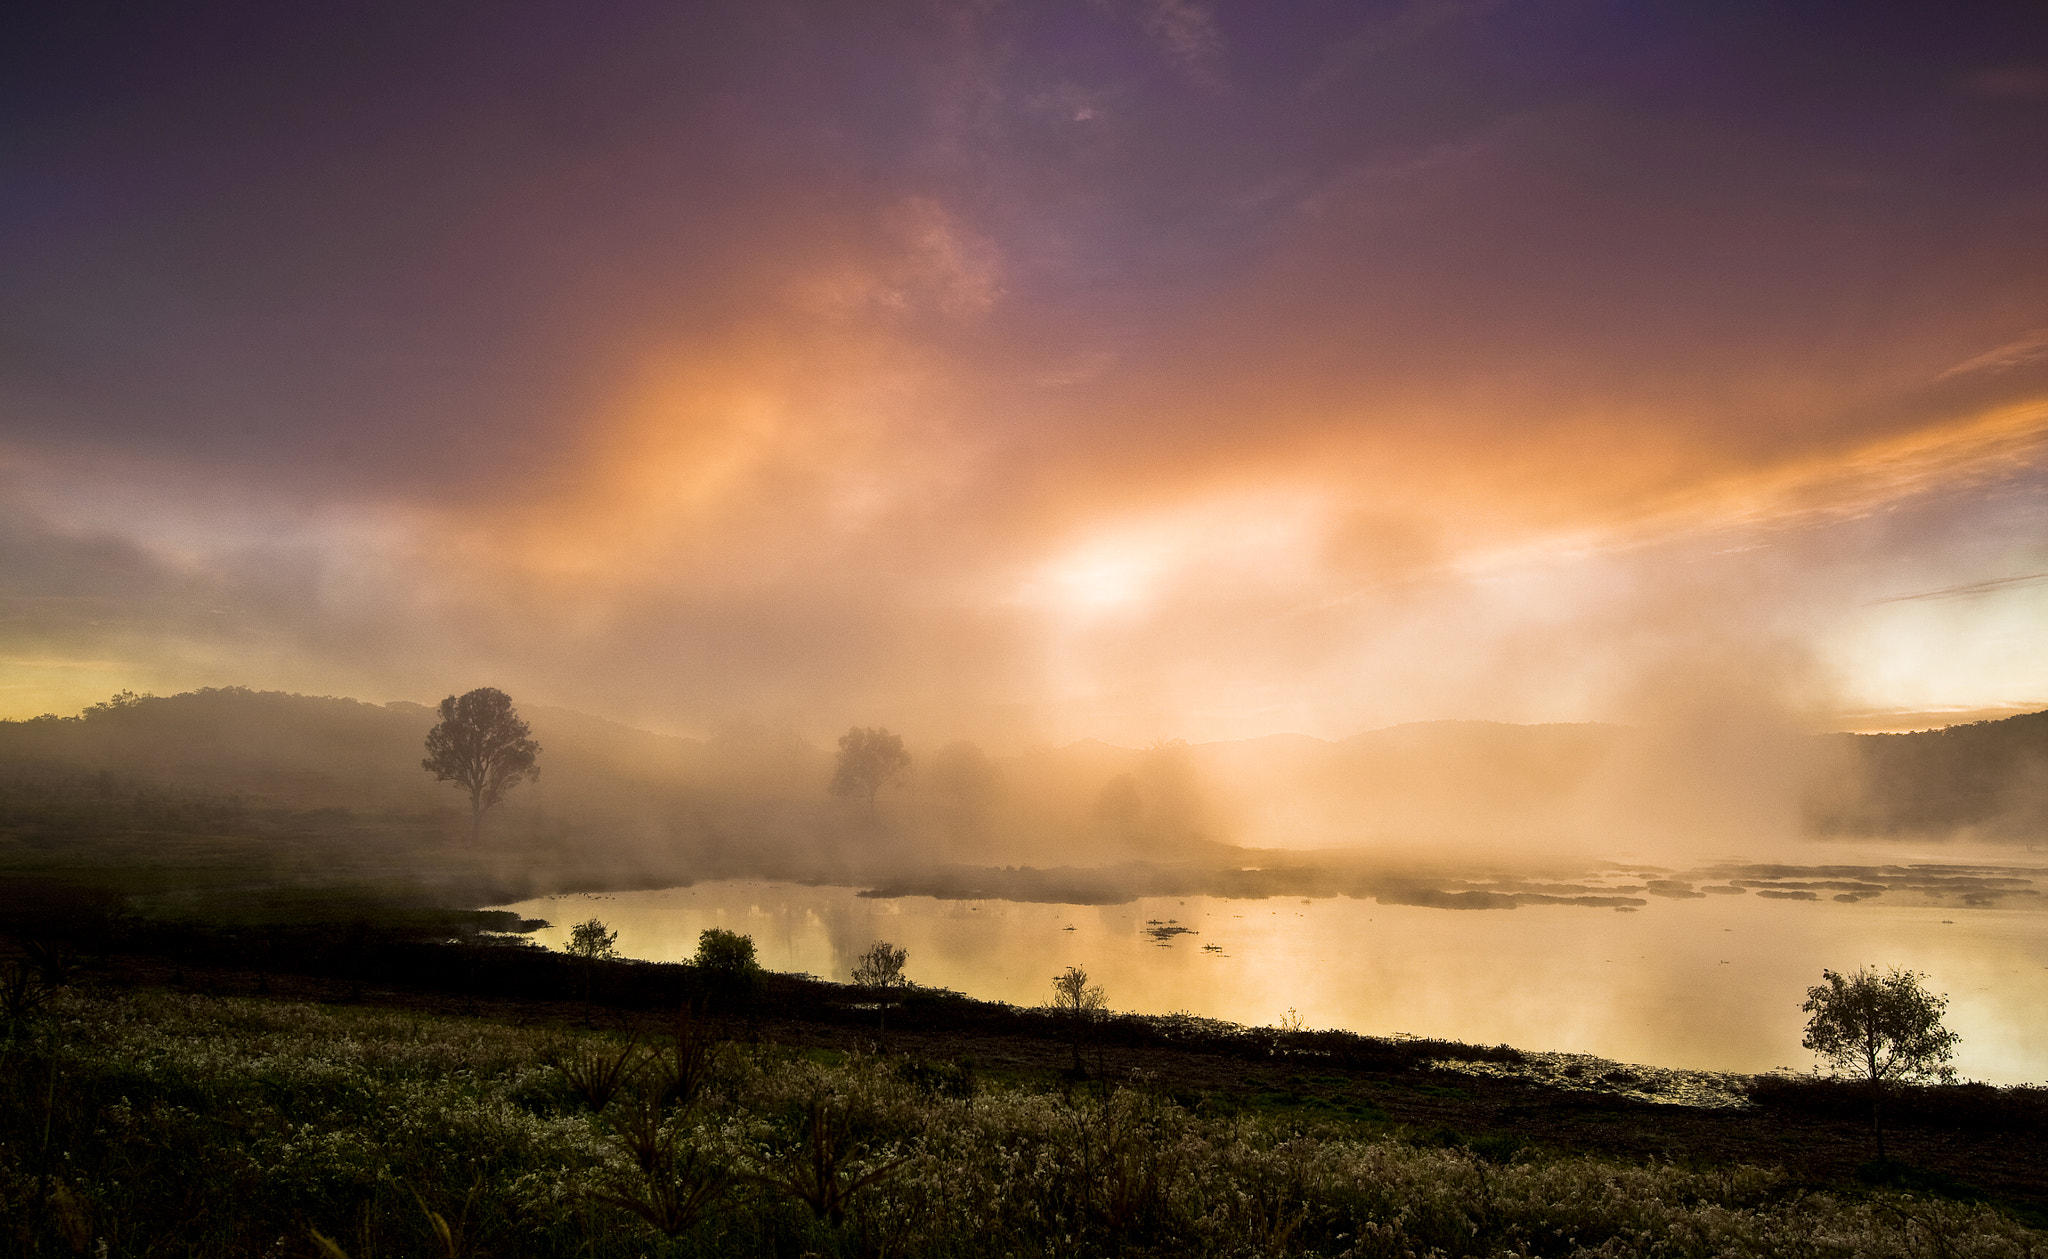 Photograph The Glow by Mel Sinclair on 500px